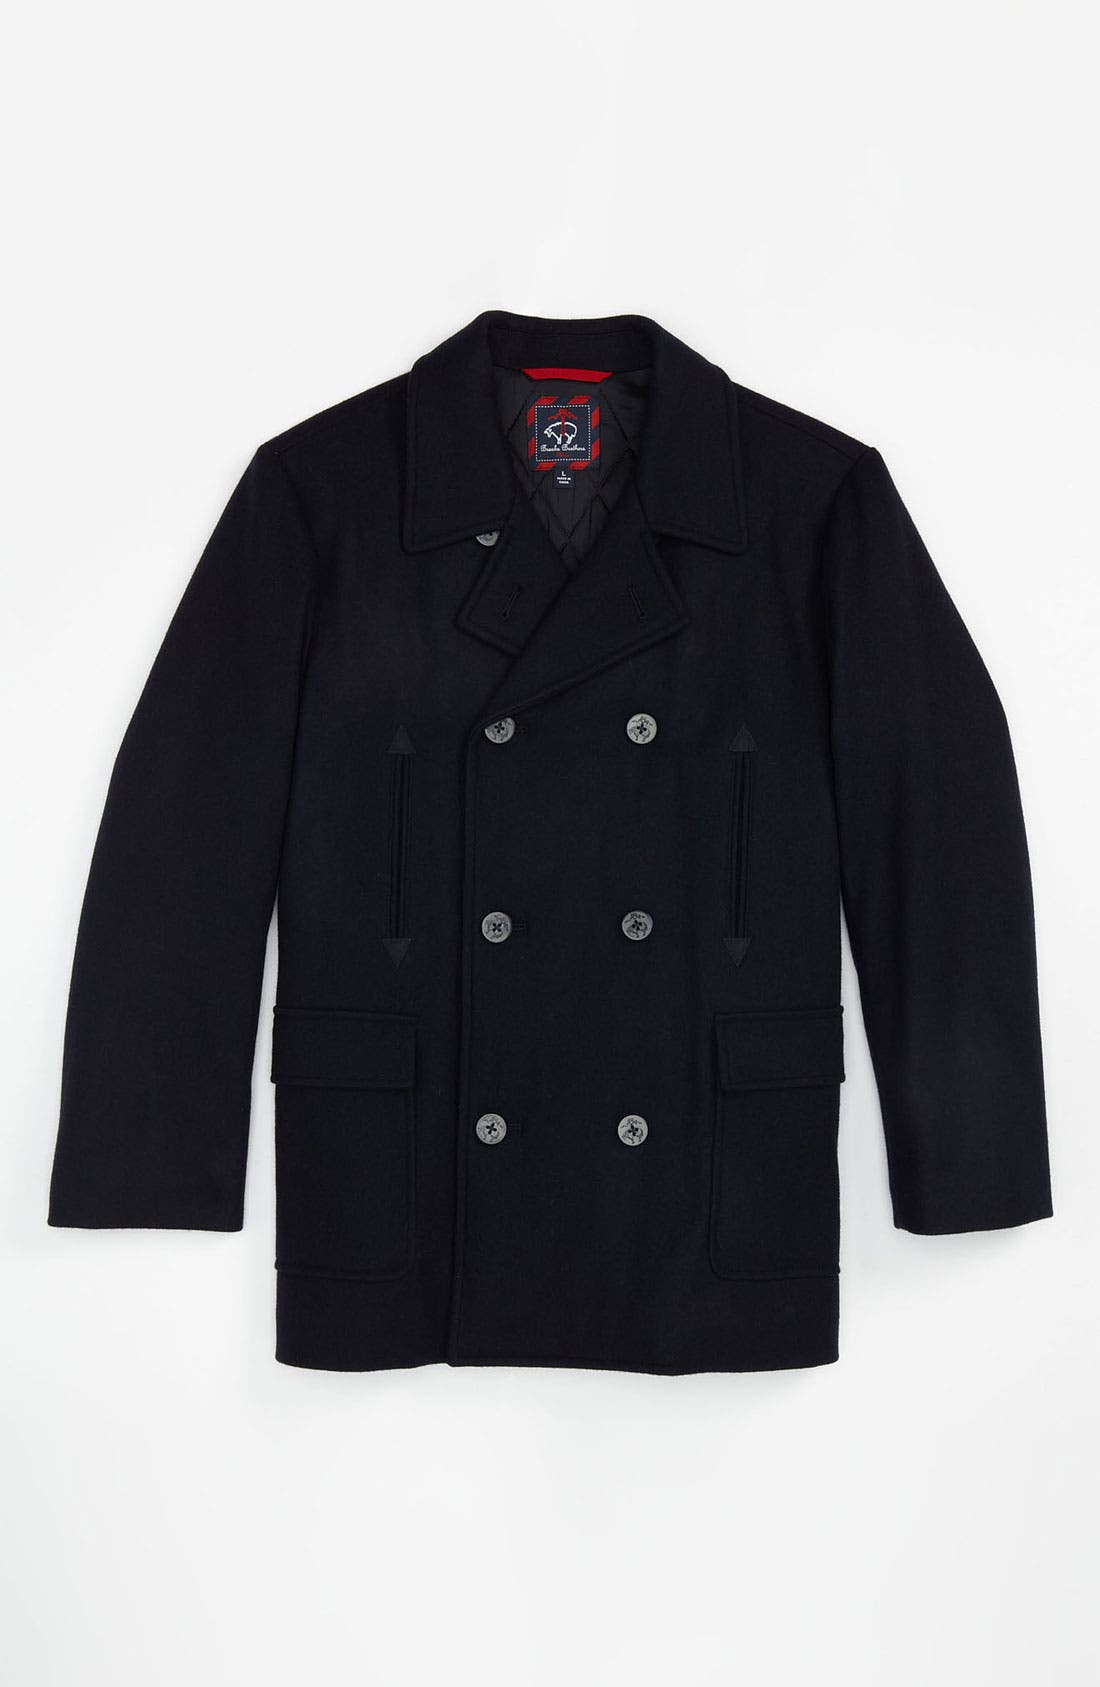 Alternate Image 1 Selected - Brooks Brothers 'Melton' Peacoat (Big Boys)